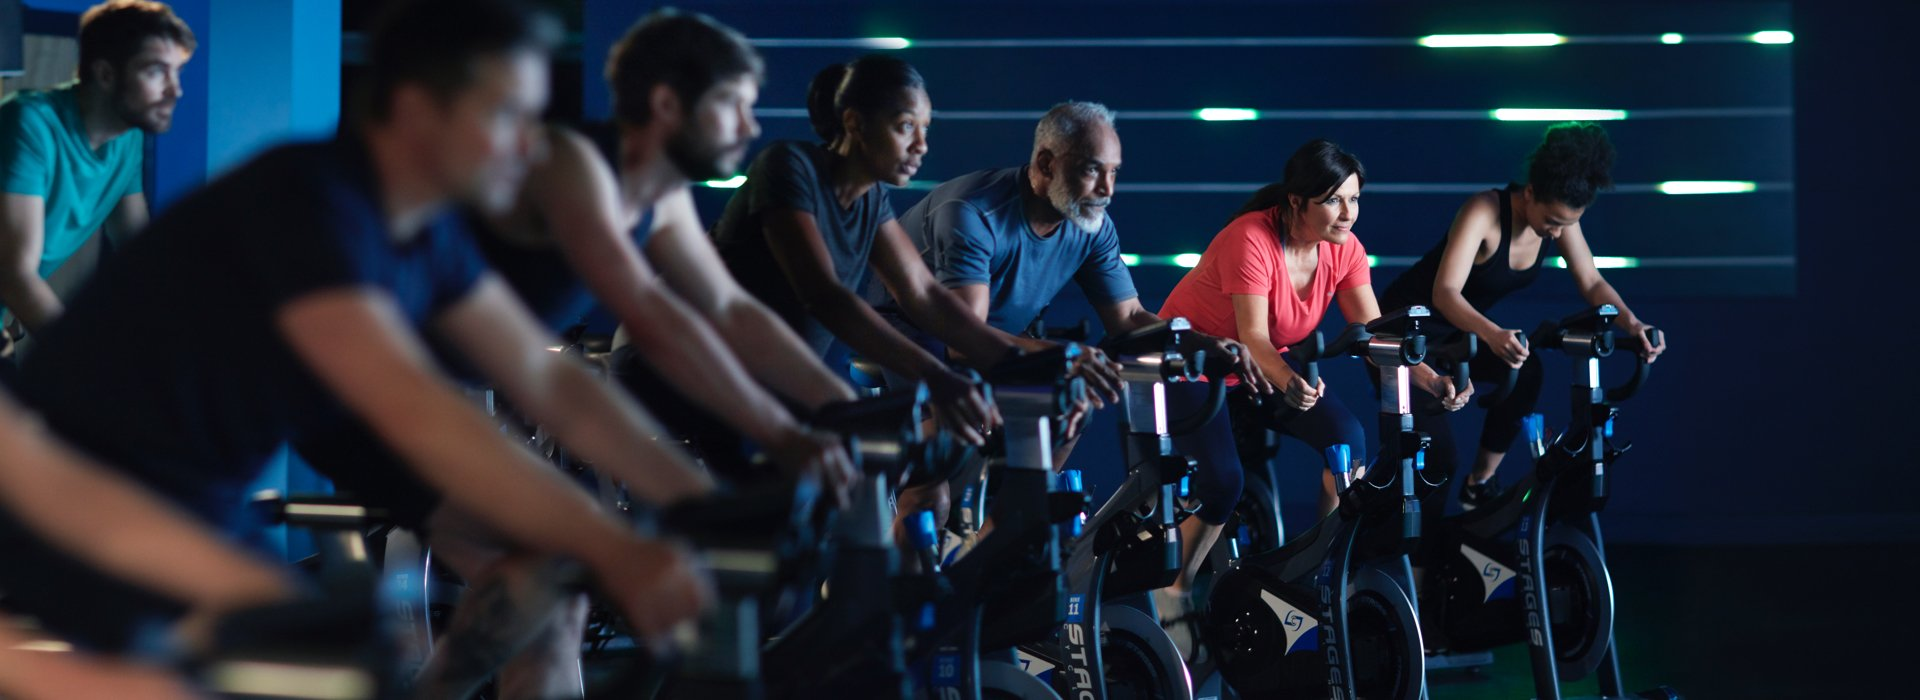 A group of people cycling in a class